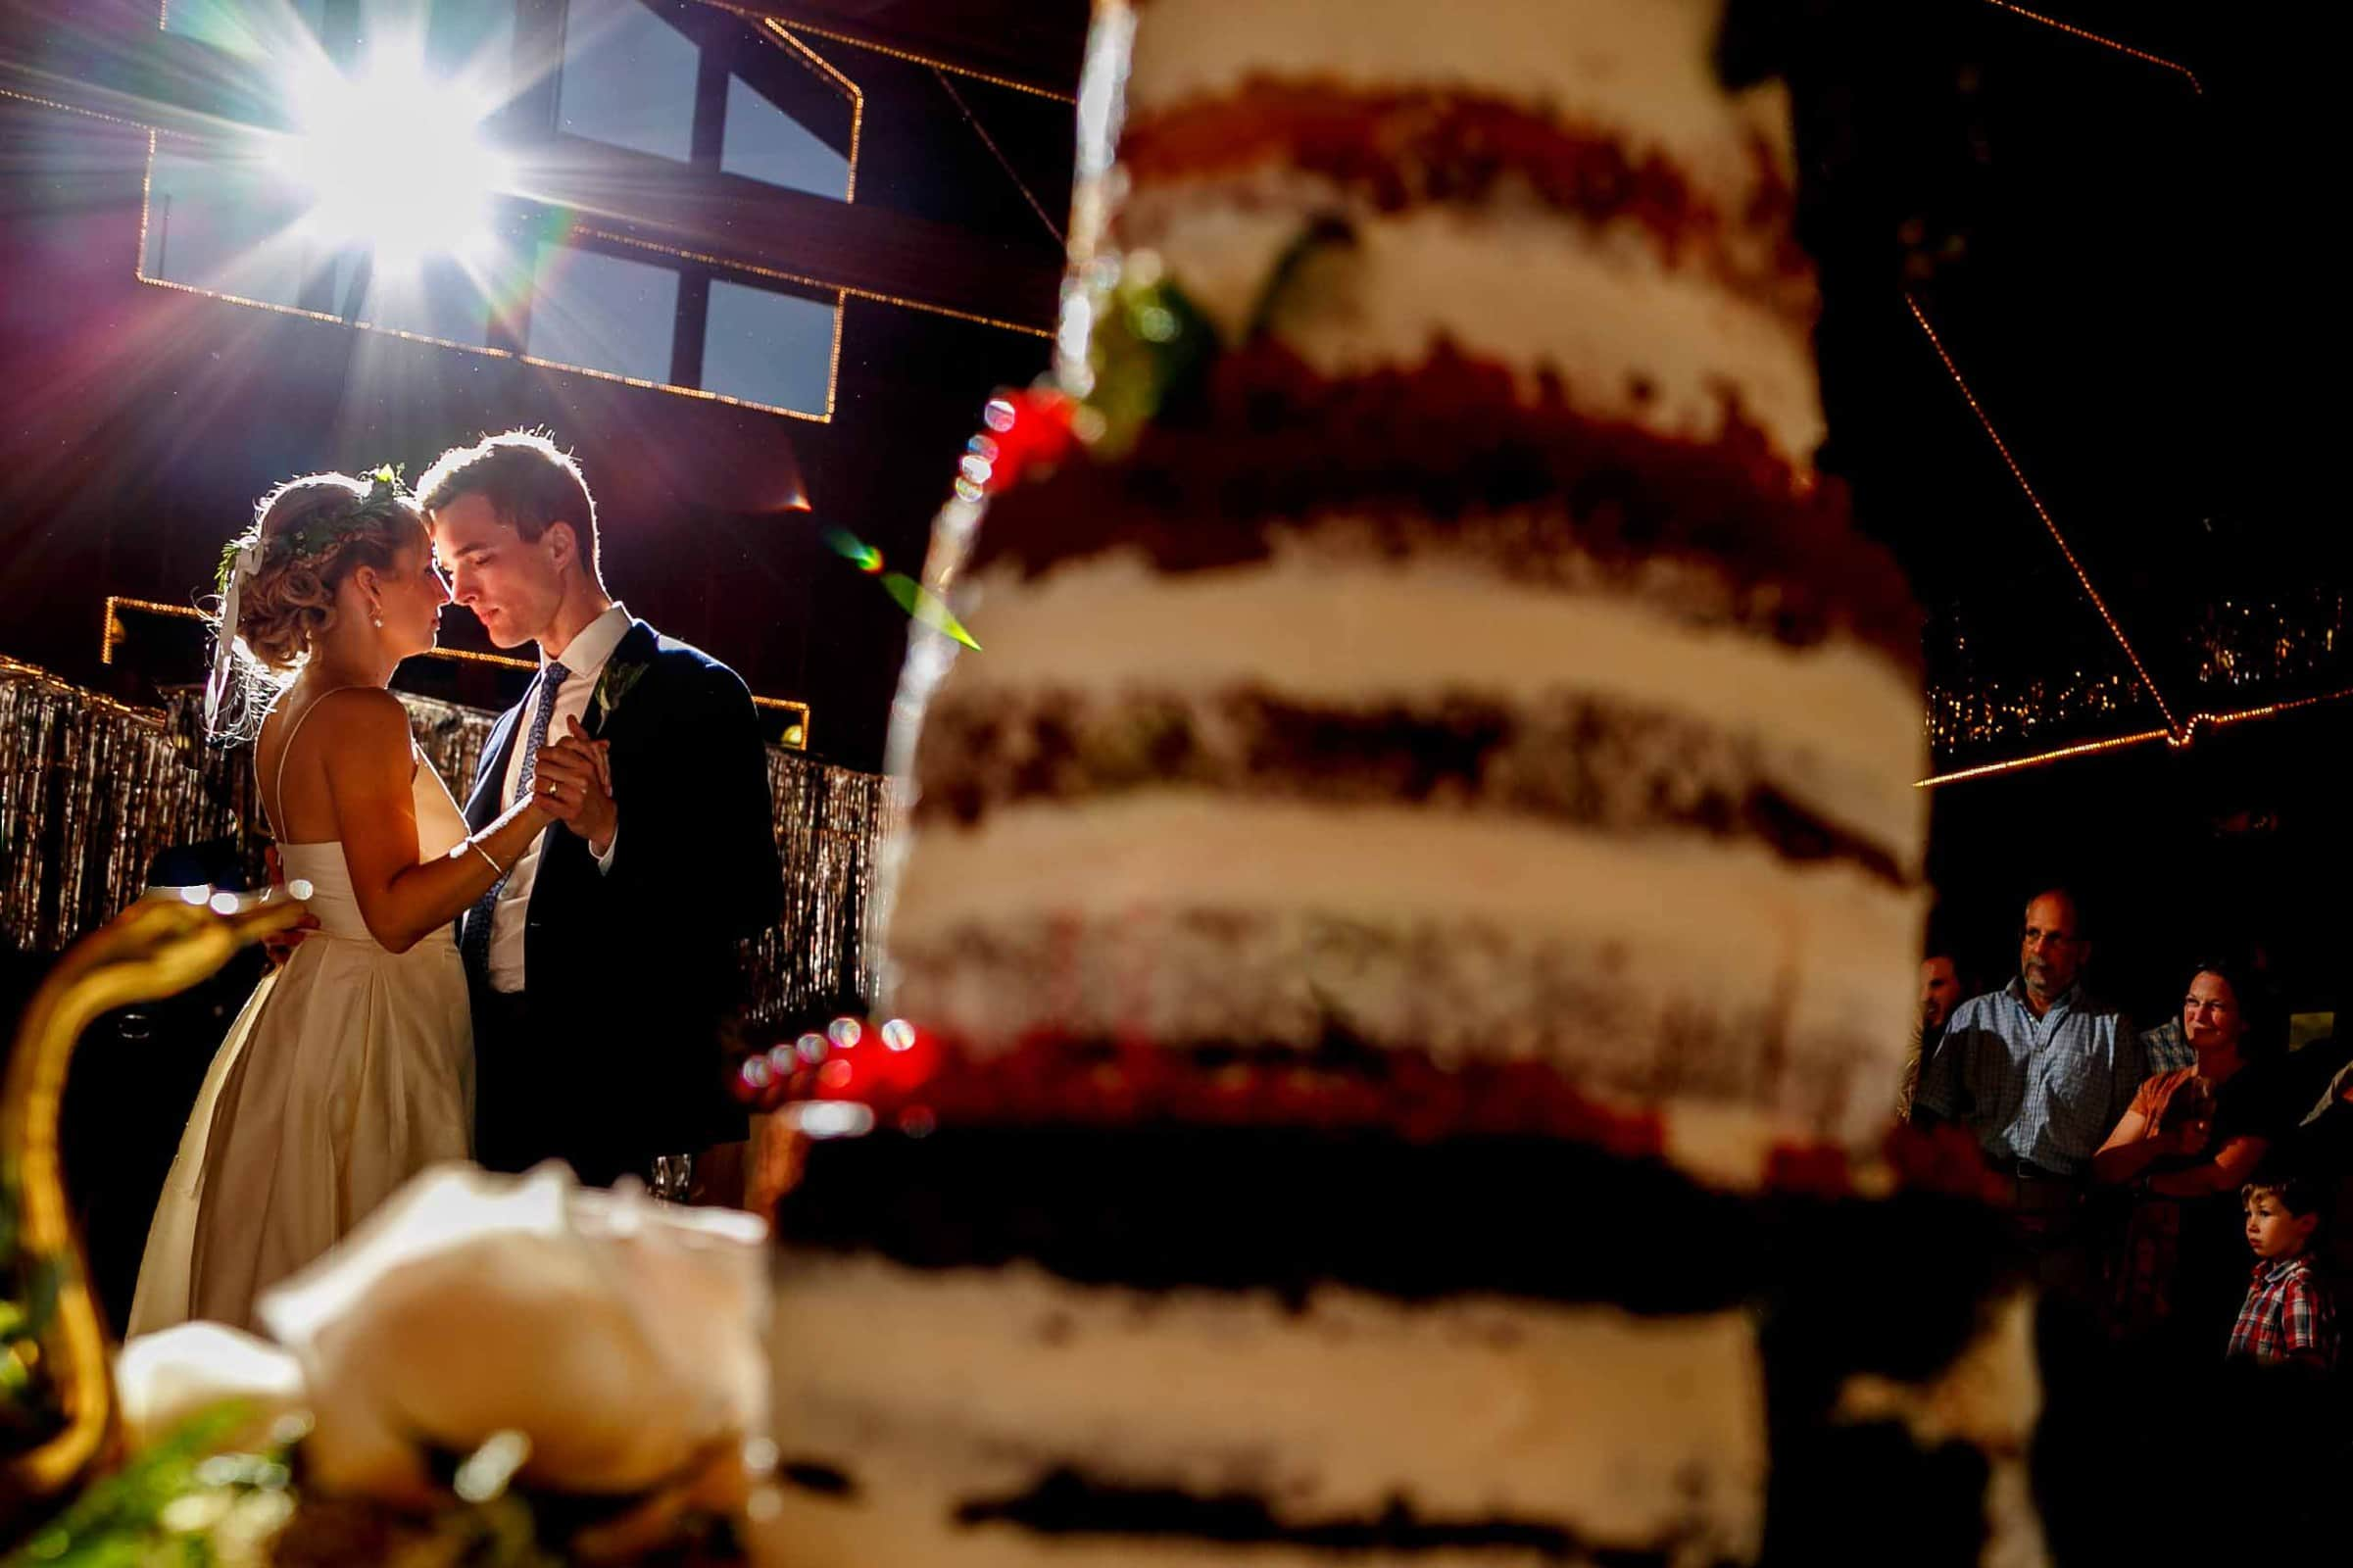 A beautiful first dance photo of a bride and groom with their cake in the foreground and flare coming behind them during camp angleos wedding reception in Oregon